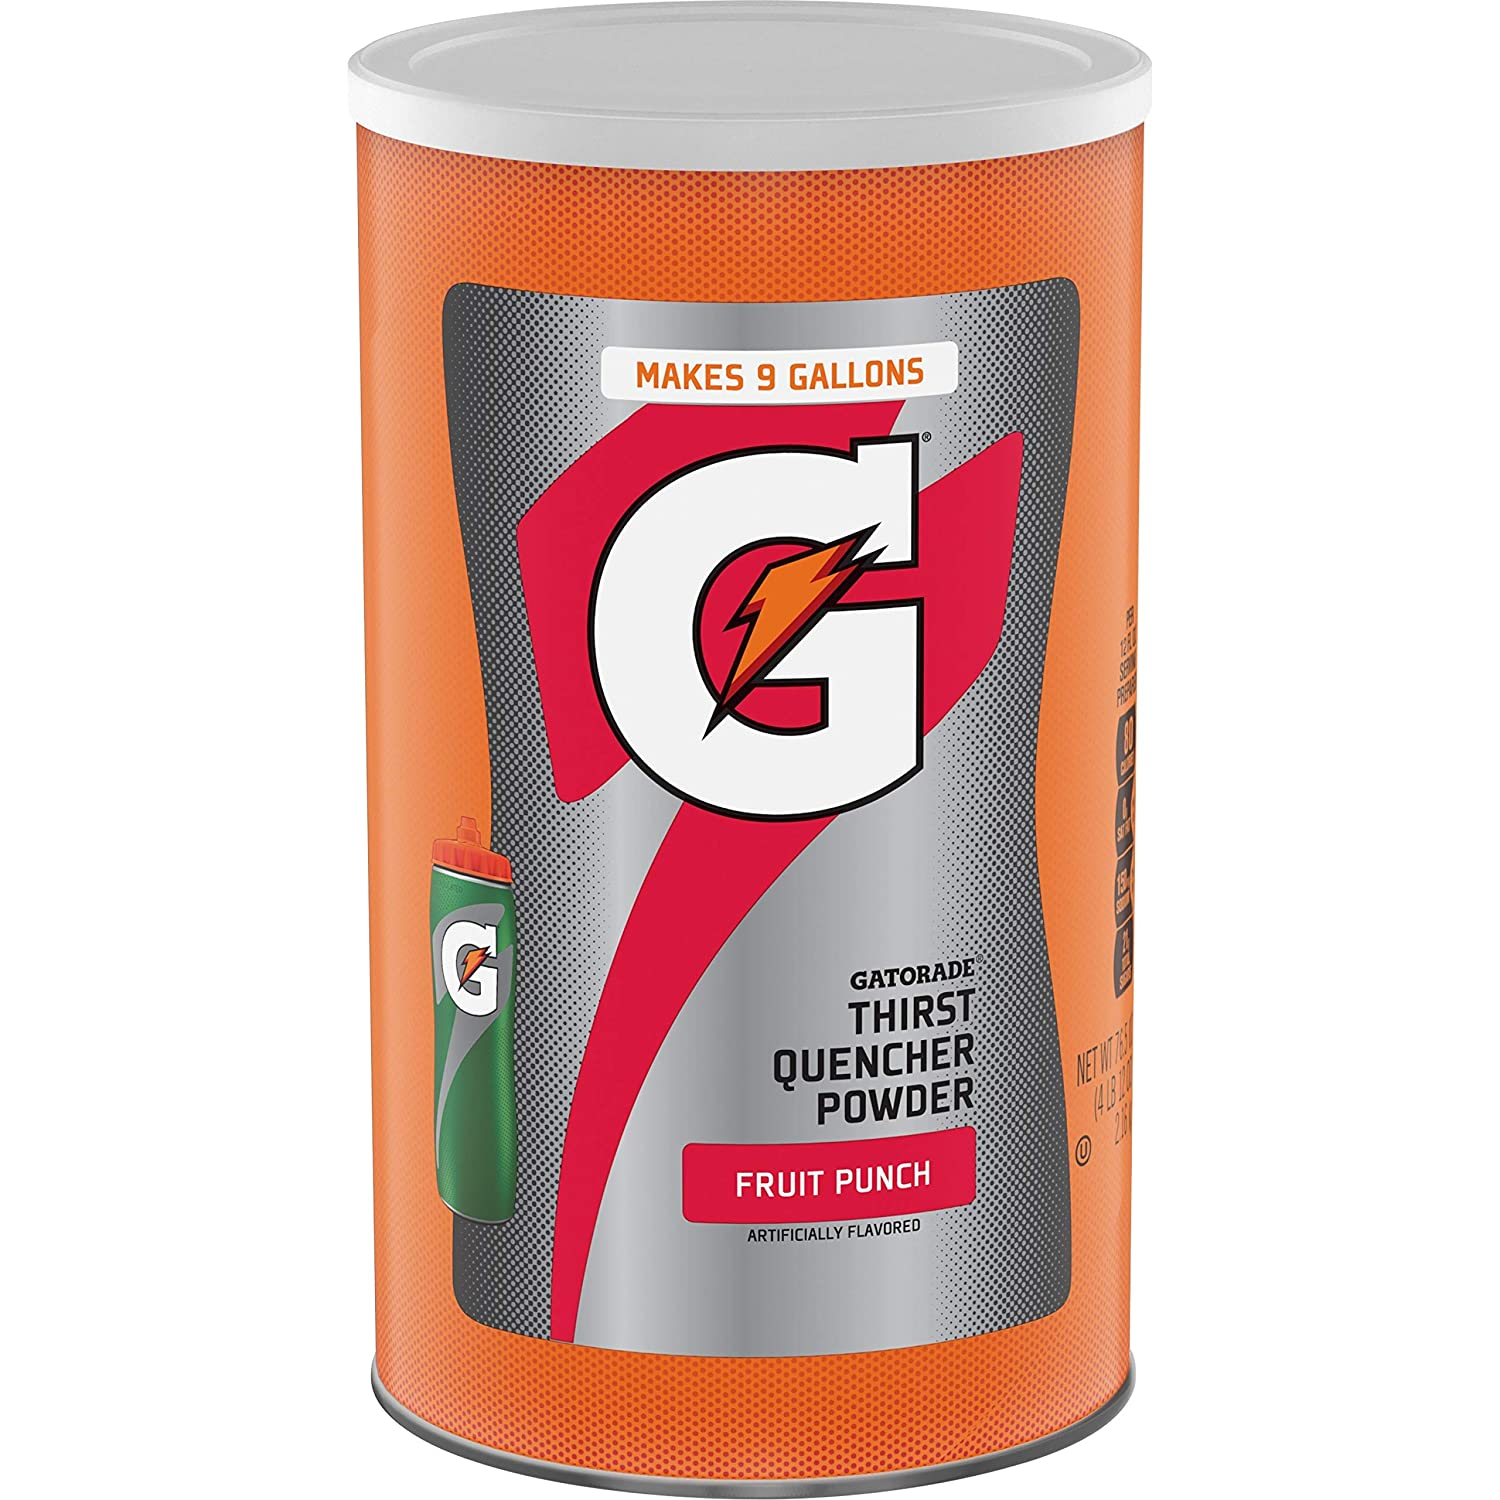 Gatorade Thirst Quencher Powder, Fruit Punch, 76.5 oz Canister